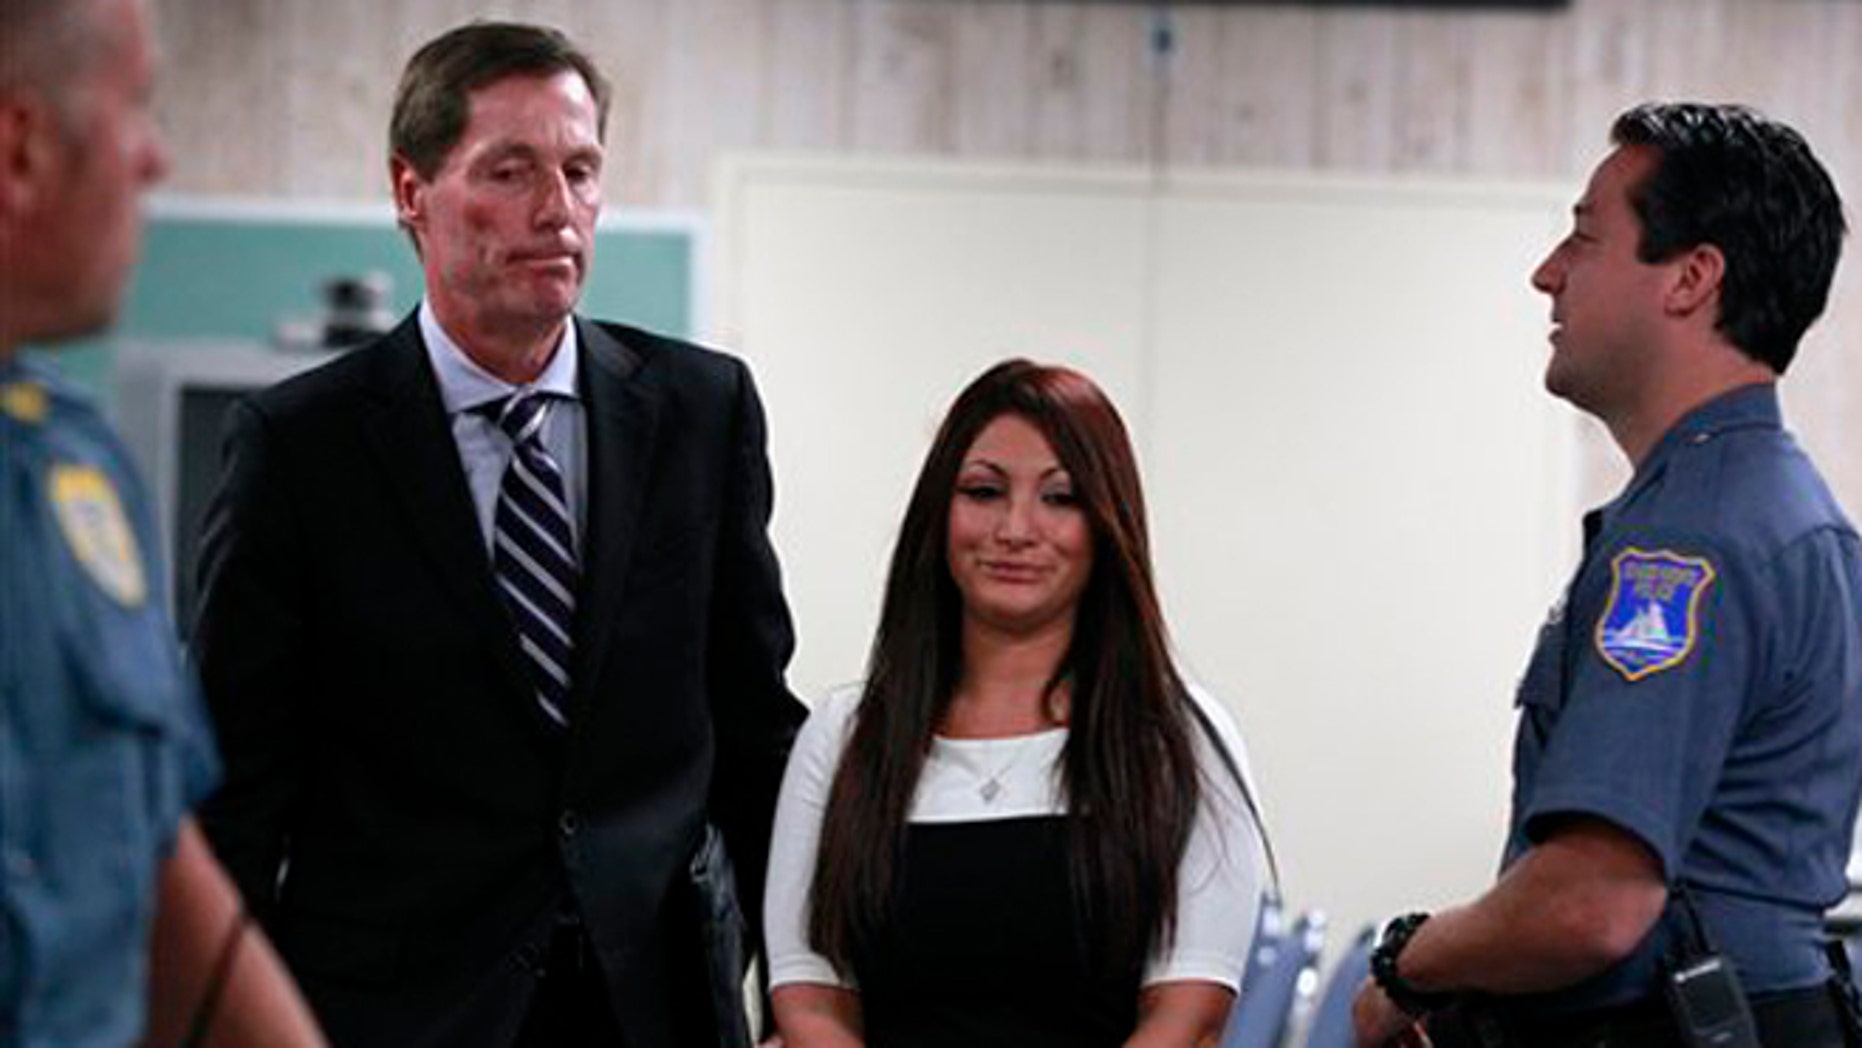 """July 3, 2012: """"Jersey Shore"""" cast member Deena Cortese, center, walks with her attorney Michael Pappa, left, in court after a hearing in Seaside Heights, N.J."""